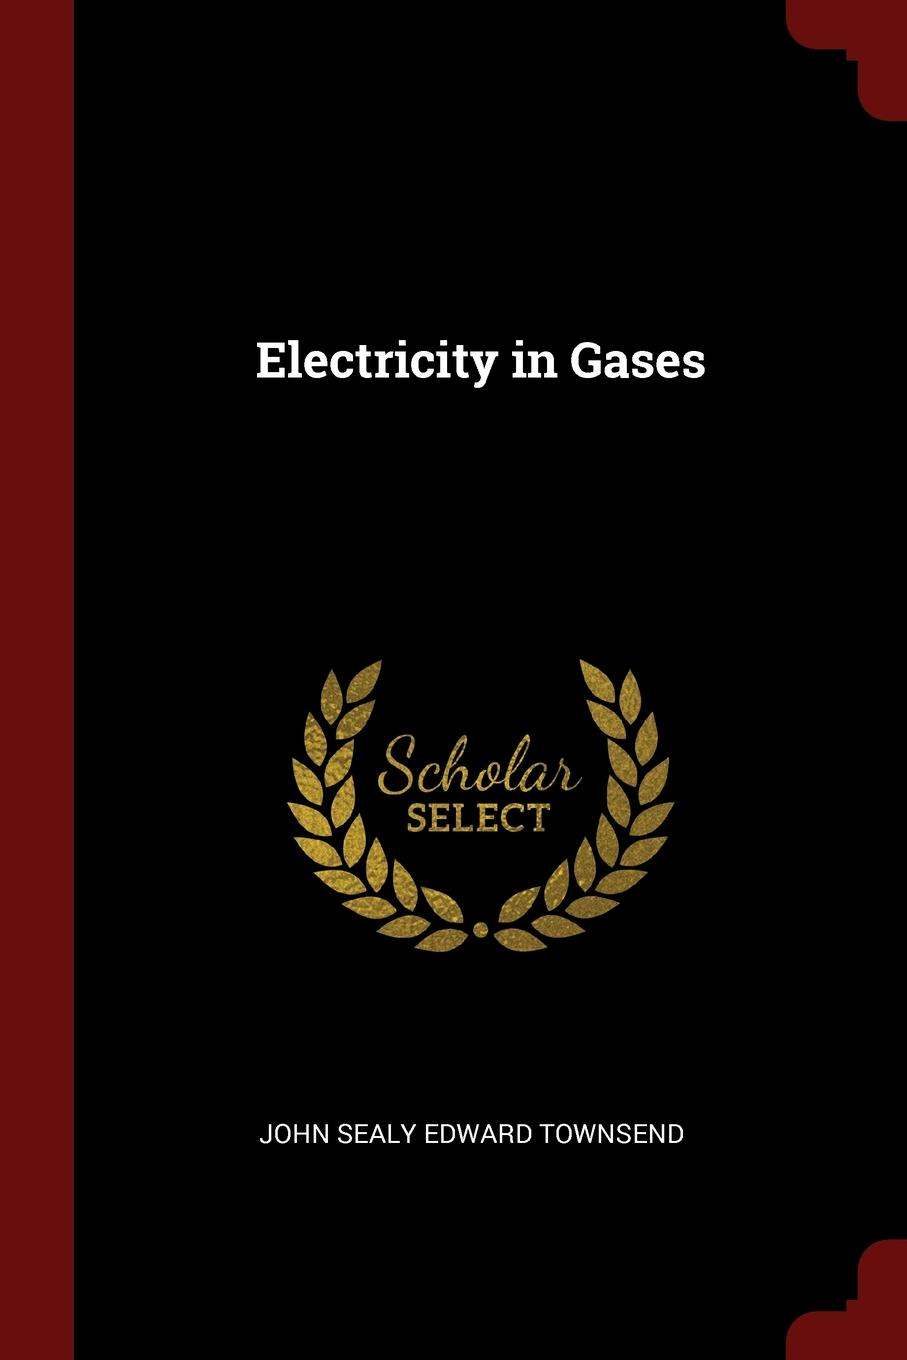 John Sealy Edward Townsend Electricity in Gases